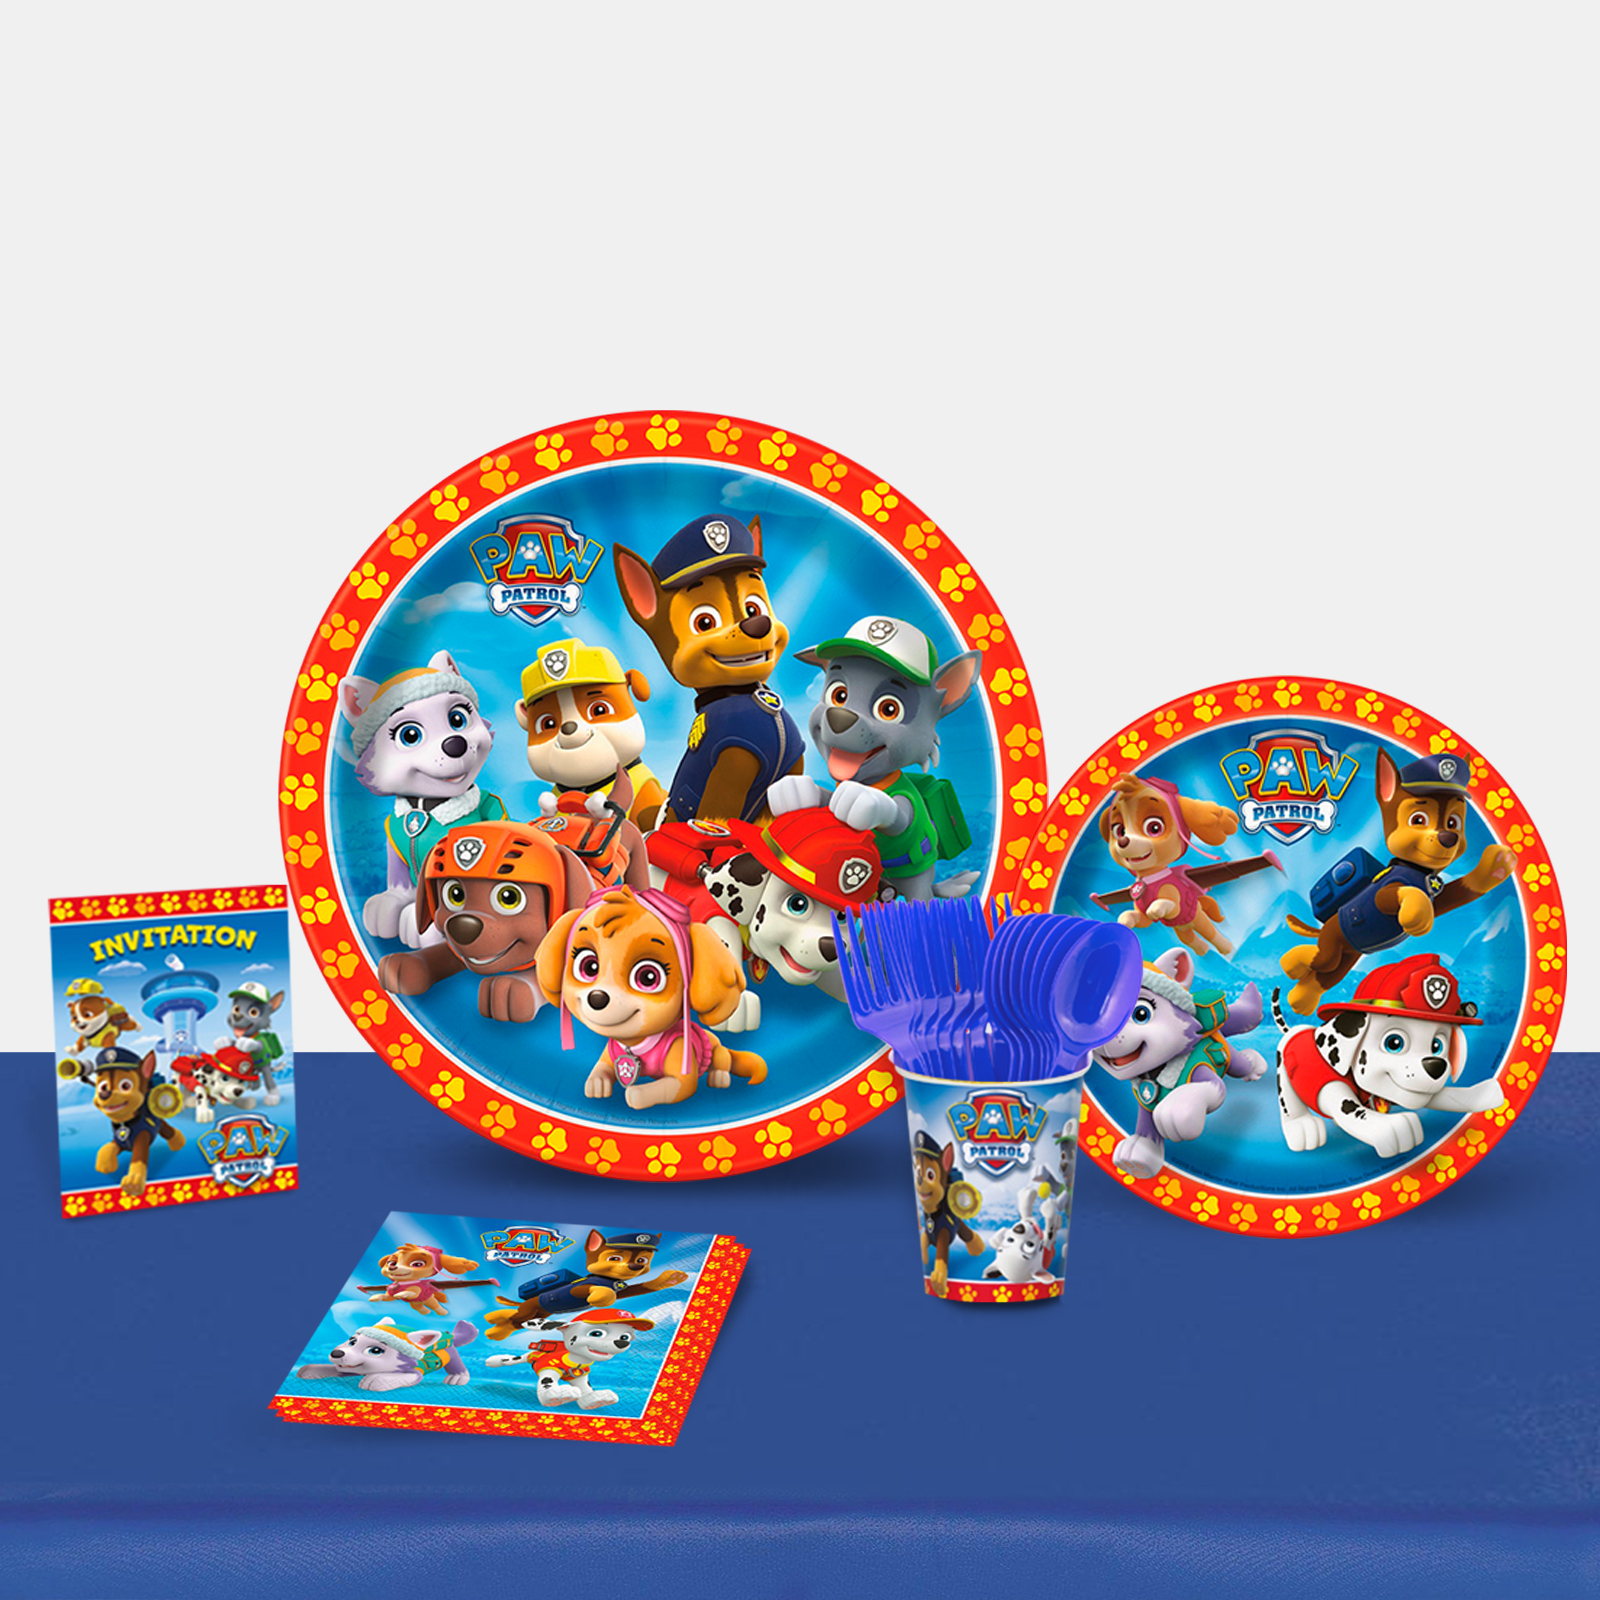 Paw Patrol Party in a Box For 16-Basic